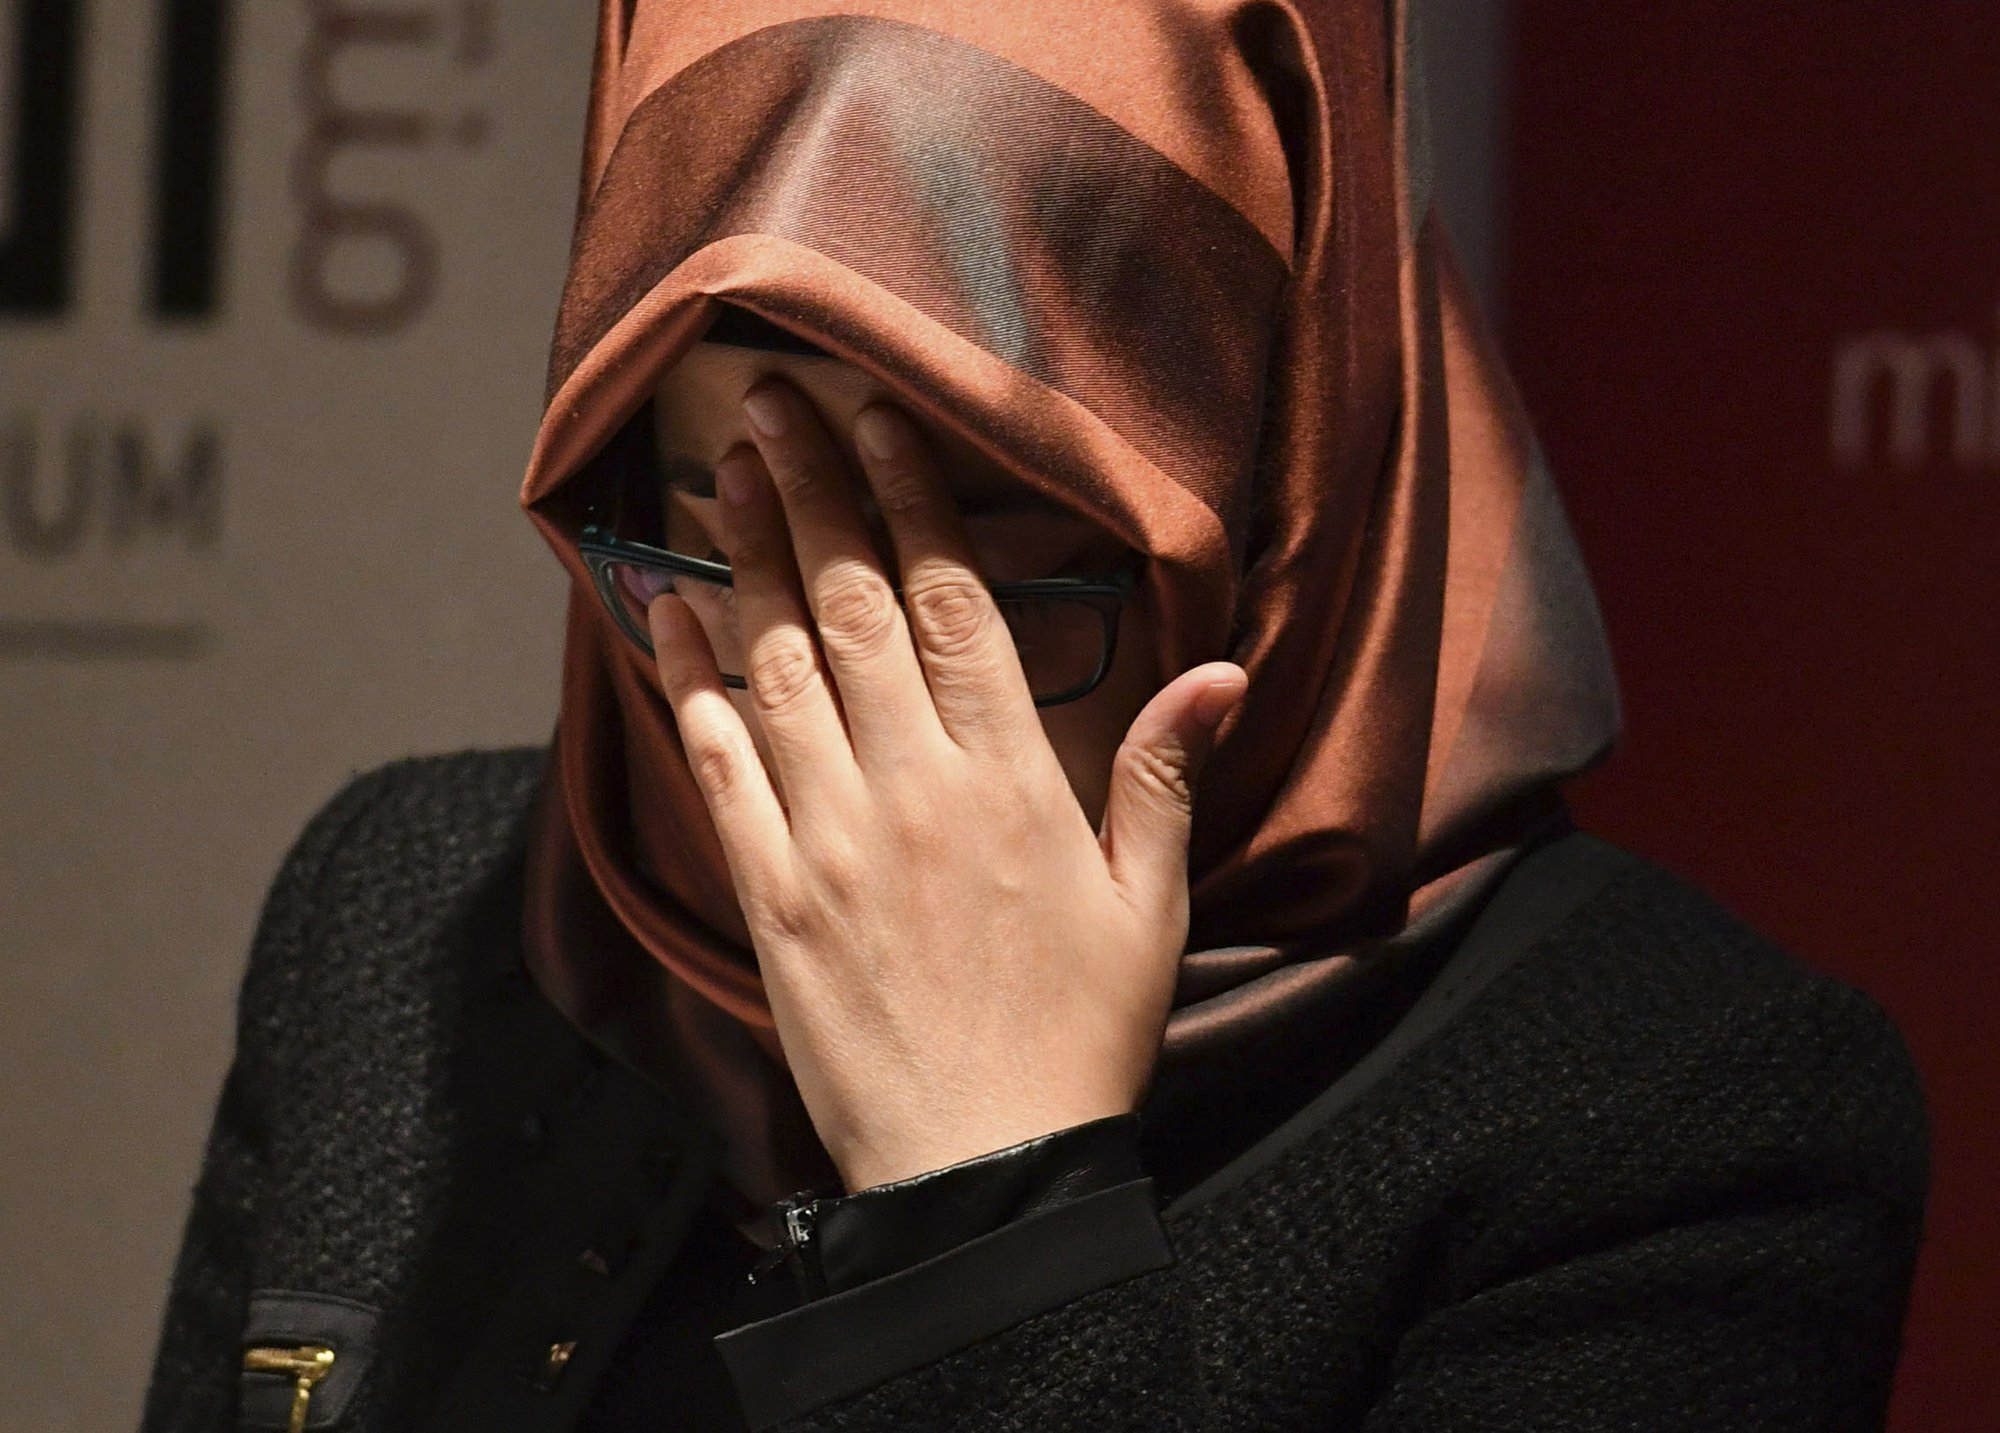 Hatice Cengiz, the fiancee of the killed Saudi journalist Jamal Khashoggi, reacts as she speaks during a memorial event for her fiancee at the Mechanical Engineers Institute in London, on Monday Oct. 29, 2018. Photo: AP